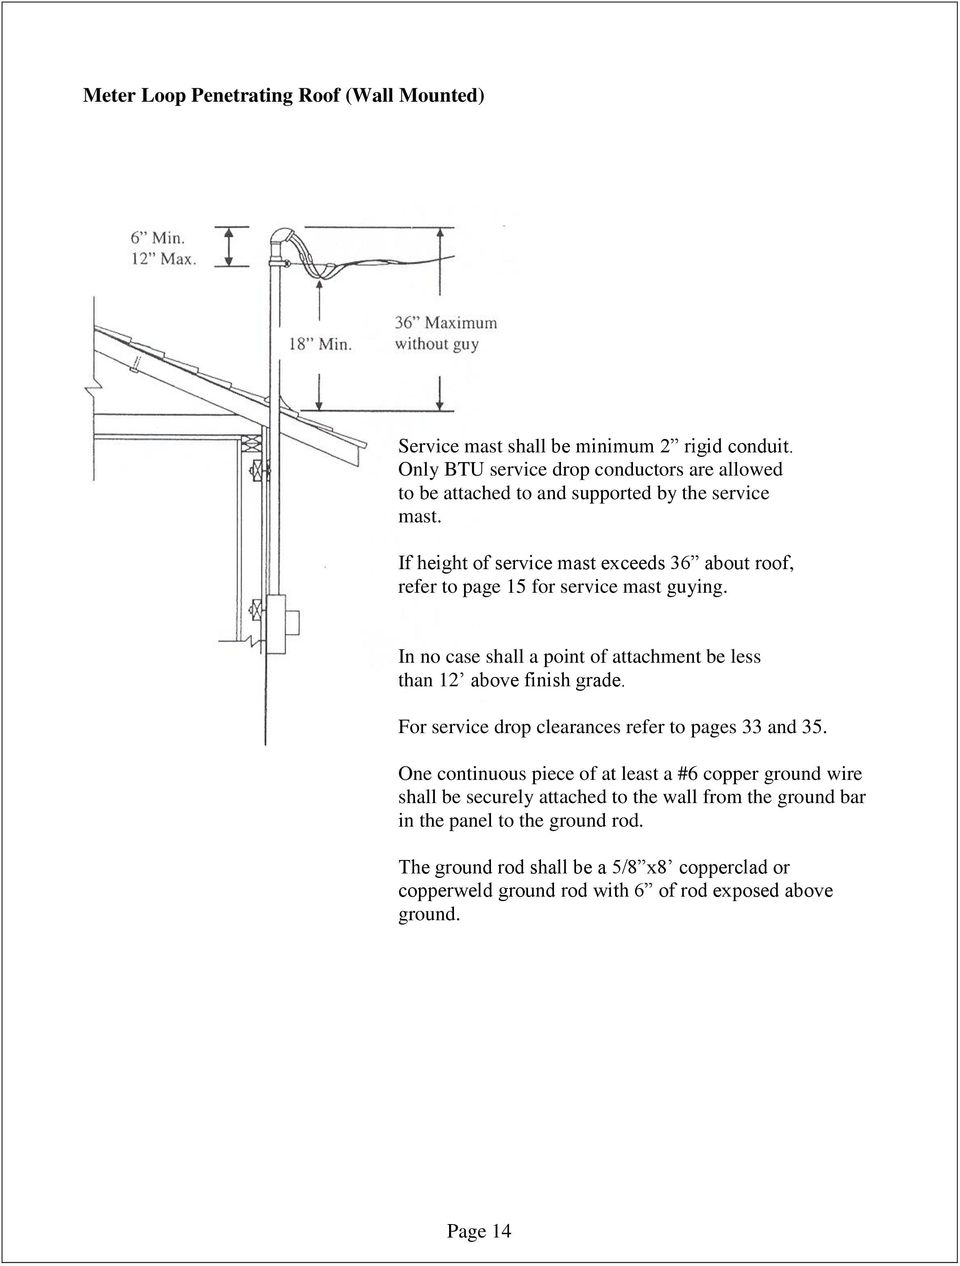 Service Entrance Requirements Manual Pdf Electrical Riser Diagram Additionally Panel If Height Of Mast Exceeds 36 About Roof Refer To Page 15 For